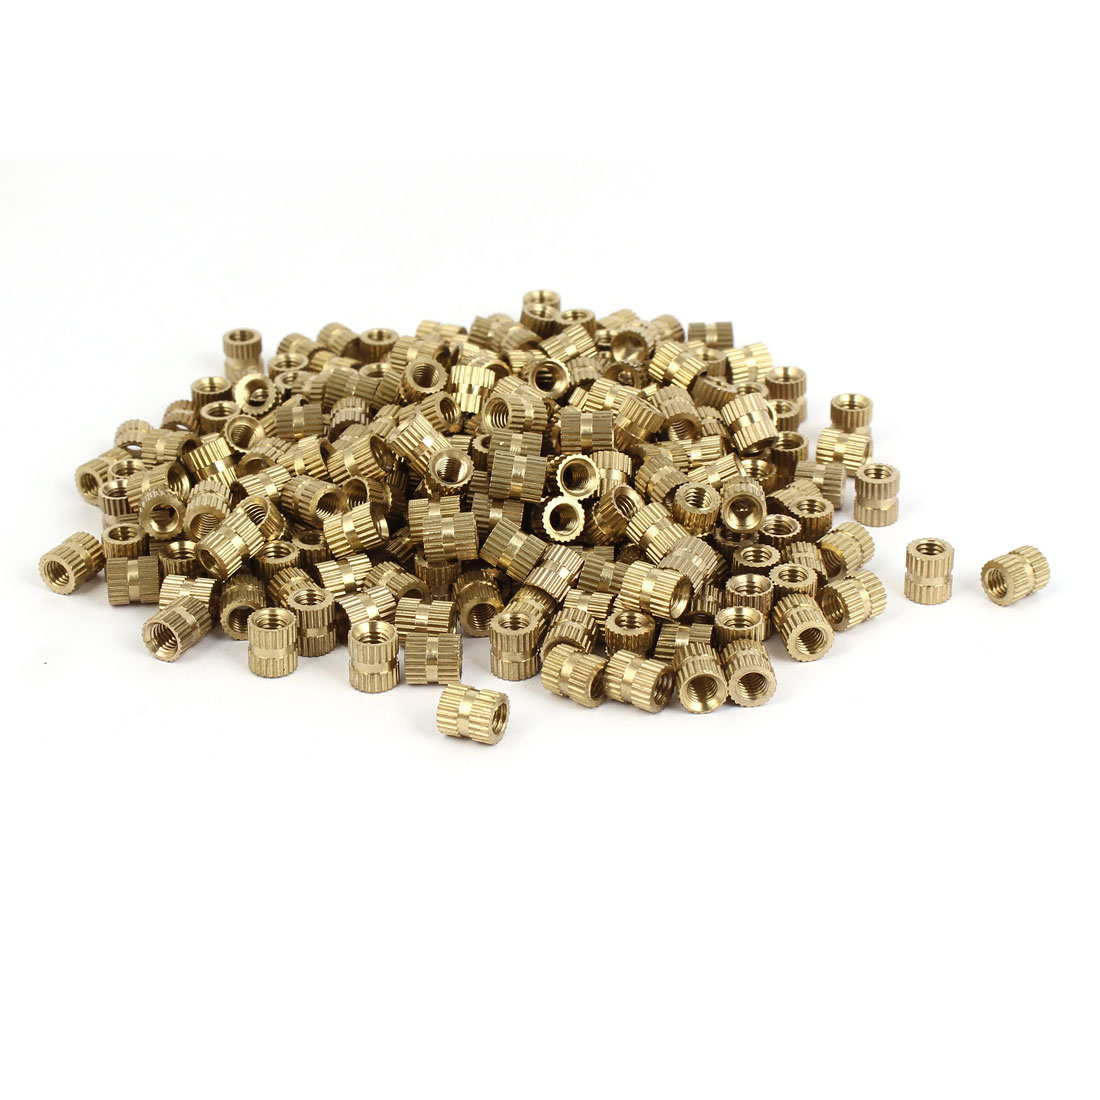 M5 x 8mm Brass Cylinder Injection Molding Knurled Threaded Insert Nuts 500PCS